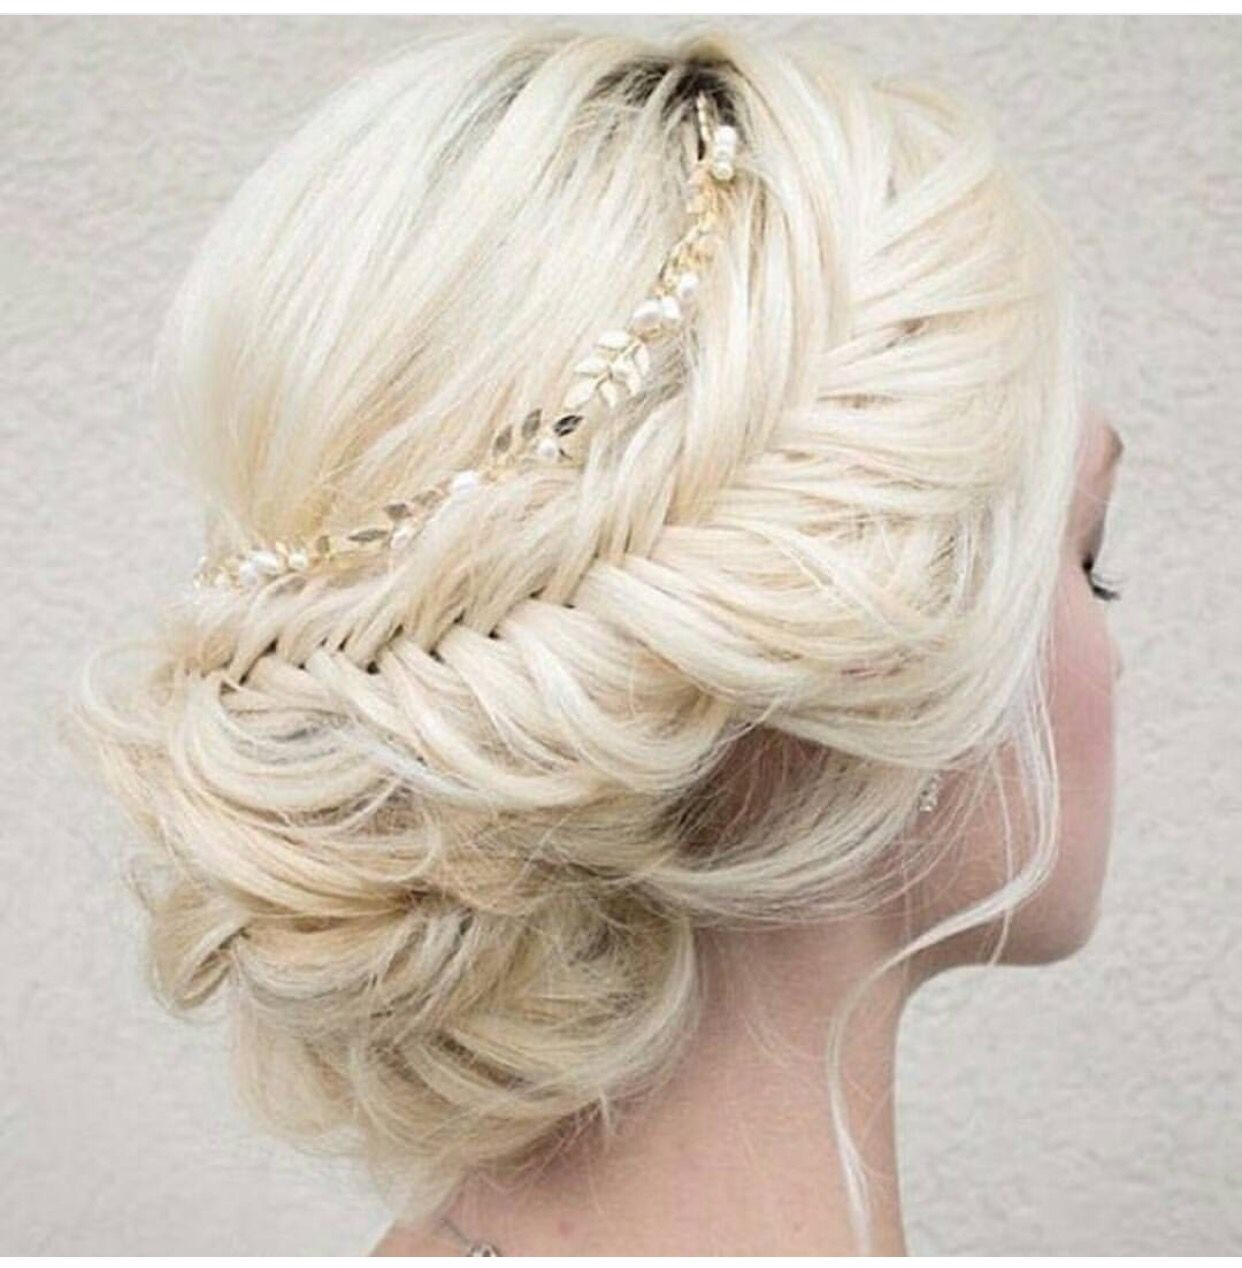 Pin by Uyen Holy on Hair | Pinterest | Bun updo, Hair style and Updo